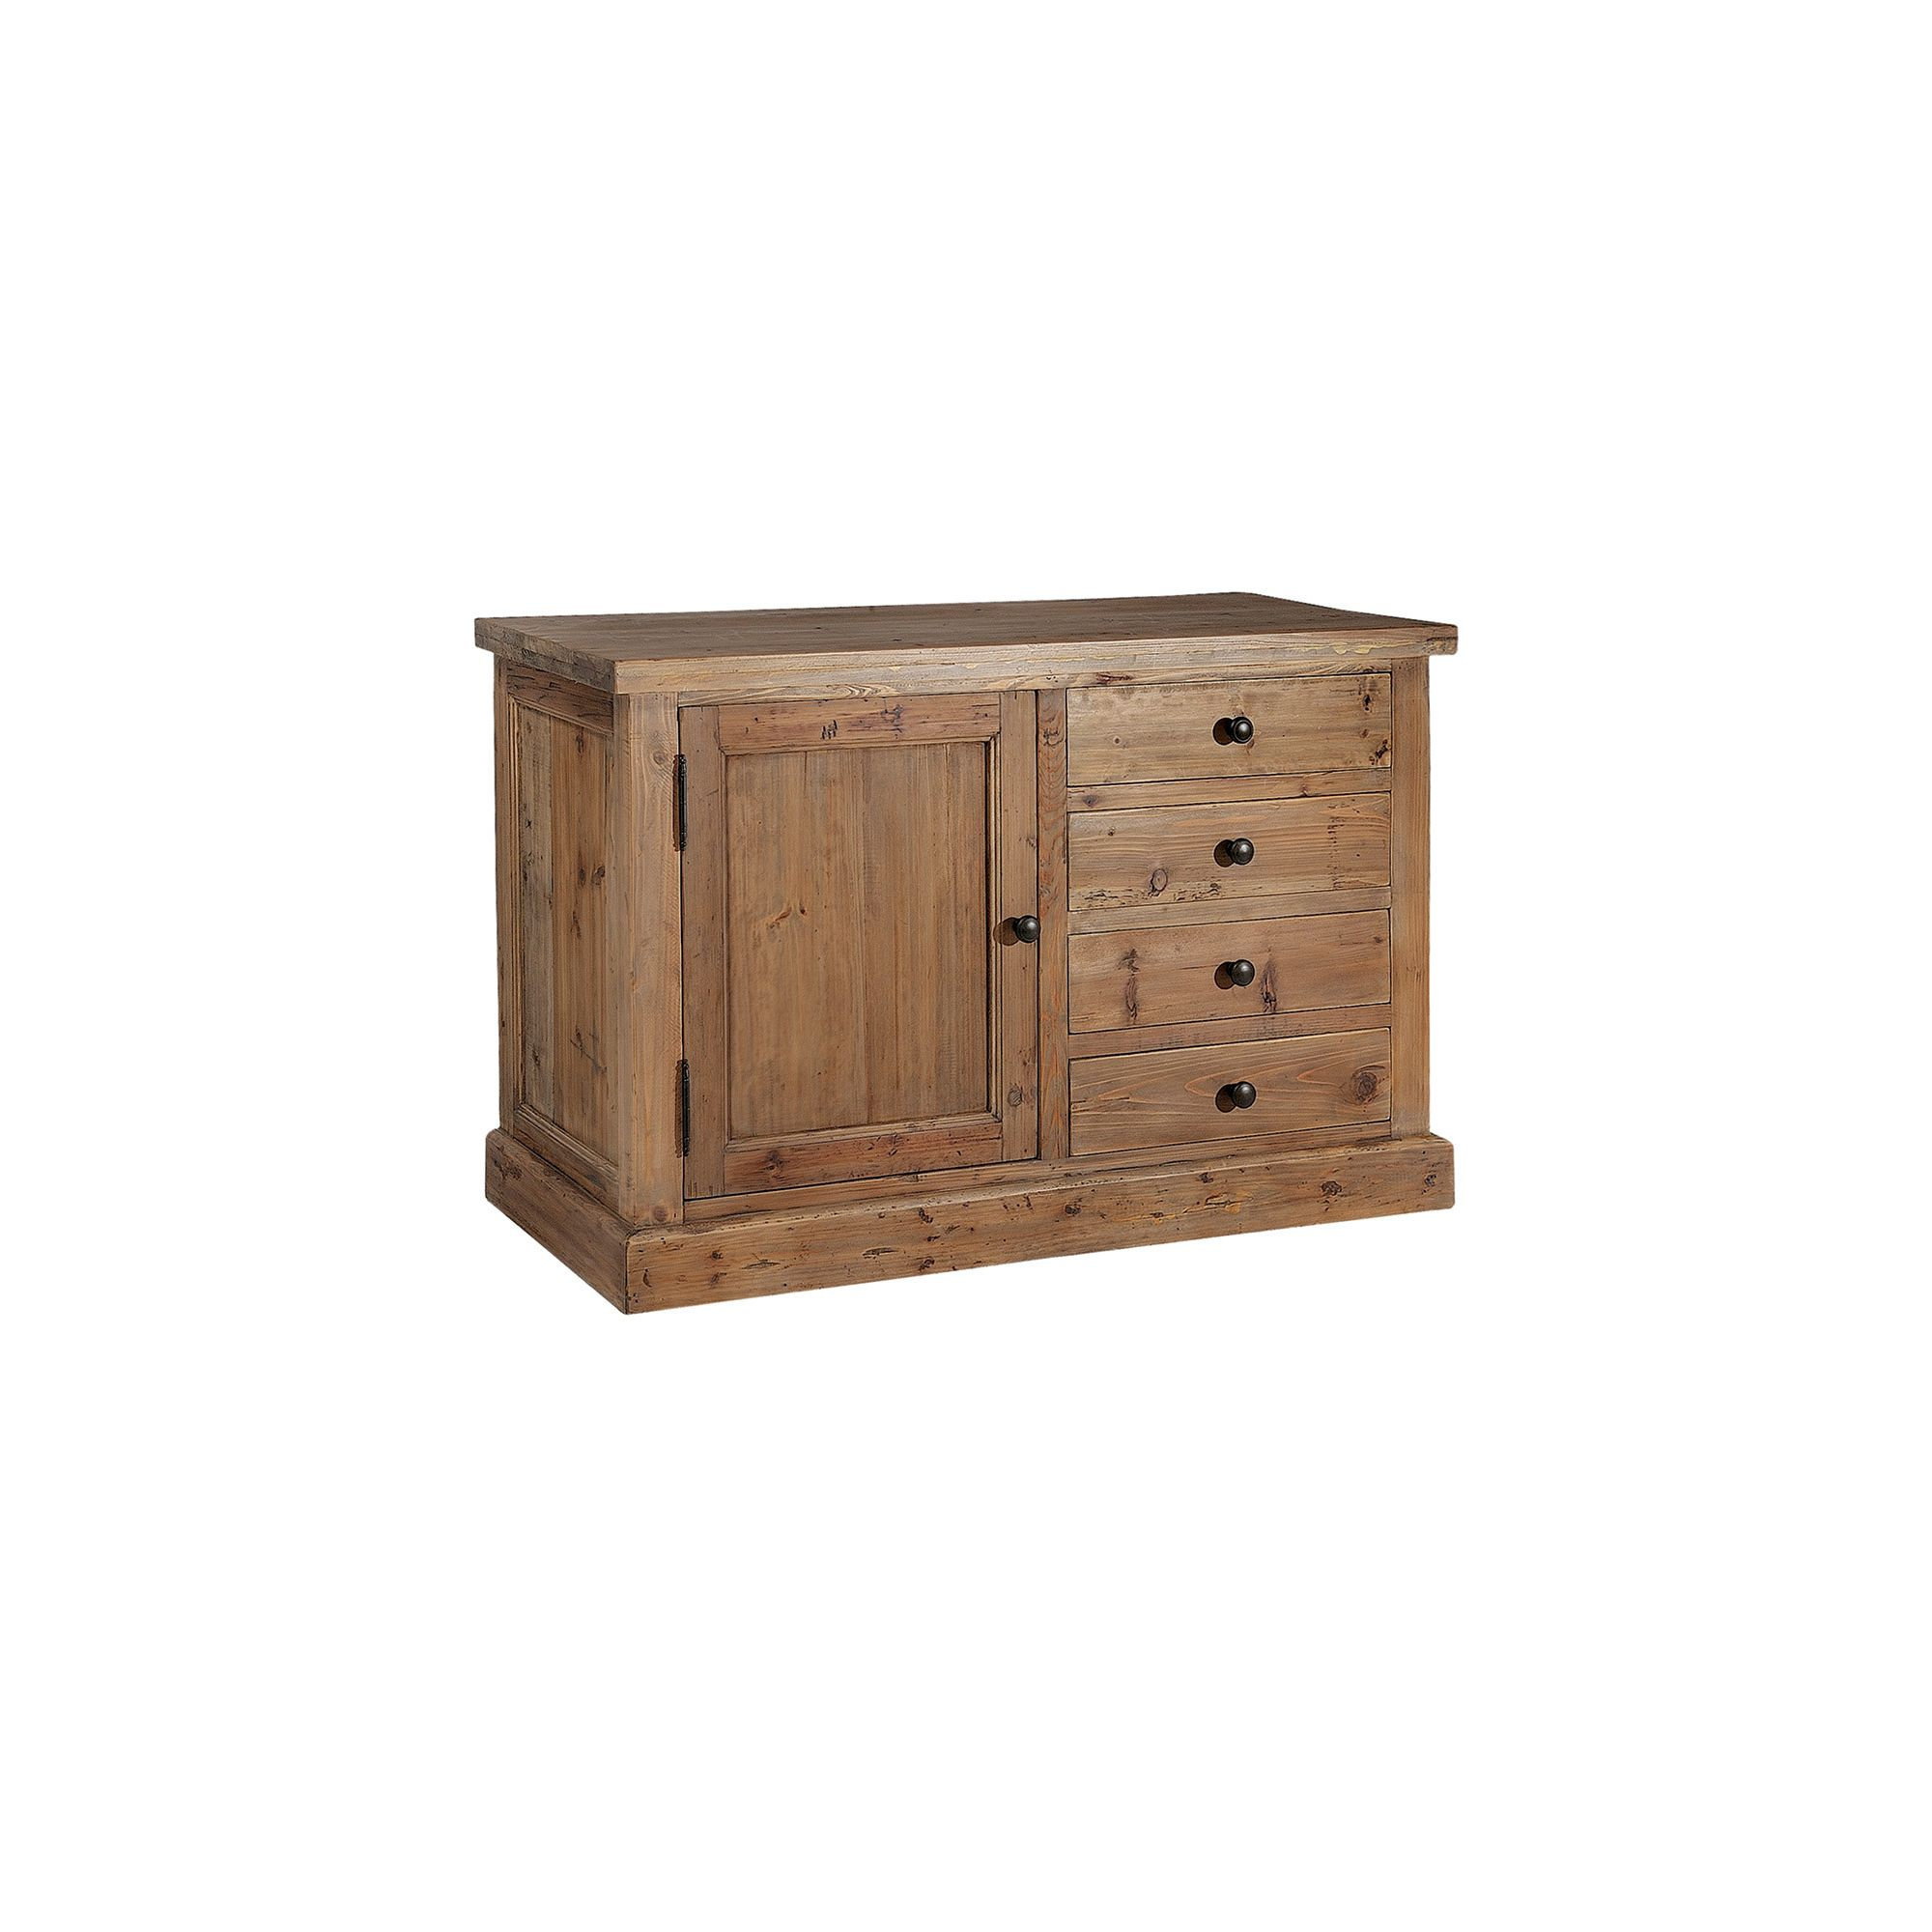 Rowico Aspen Sideboard - Natural at Tesco Direct